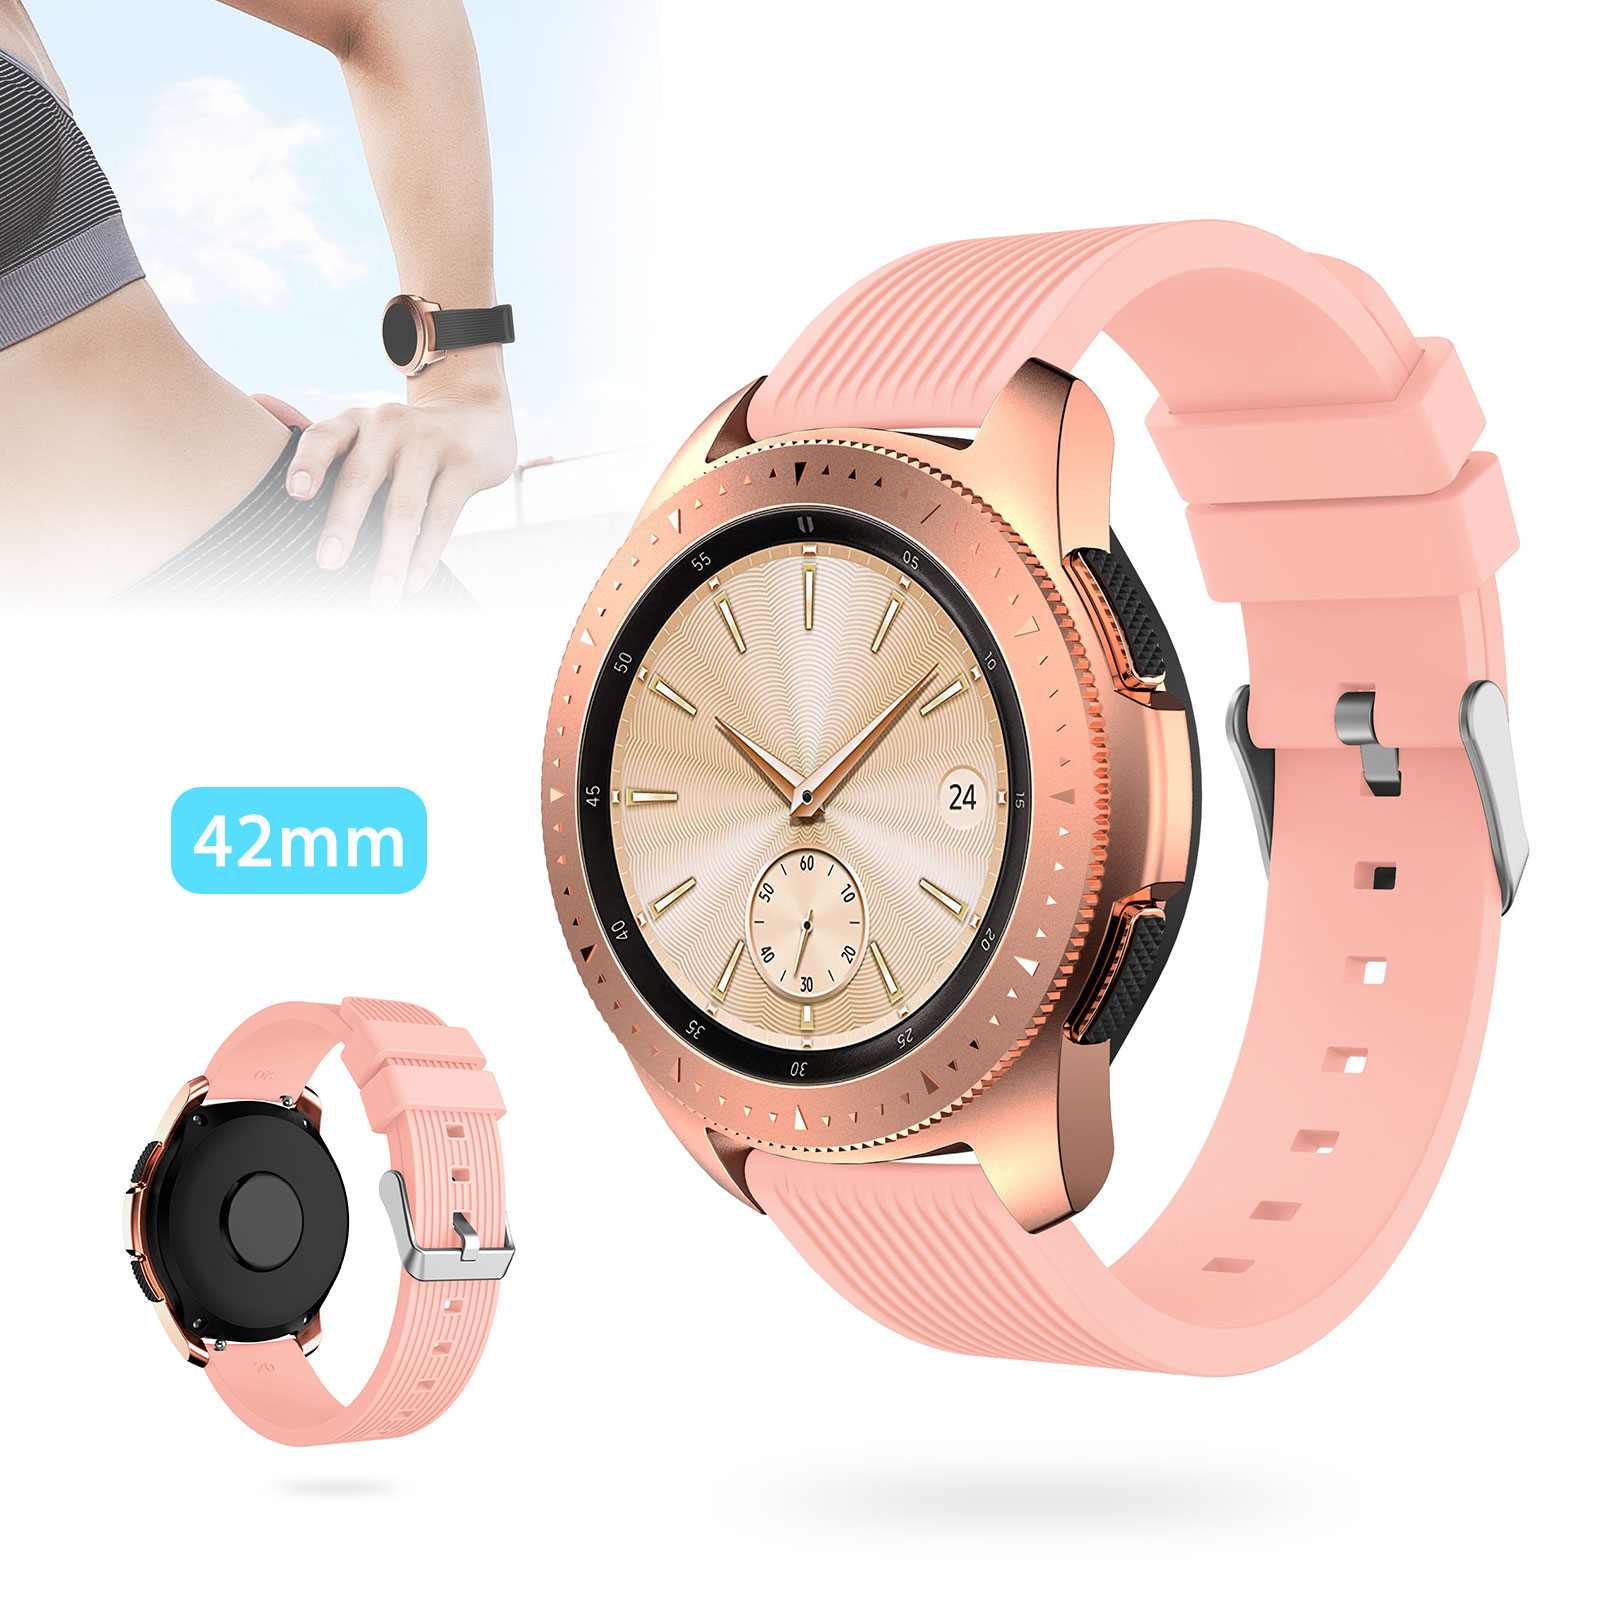 Silicone-Bracelet-Strap-Replacement-Watch-Band-For-Samsung-Galaxy-Watch-42mm thumbnail 15